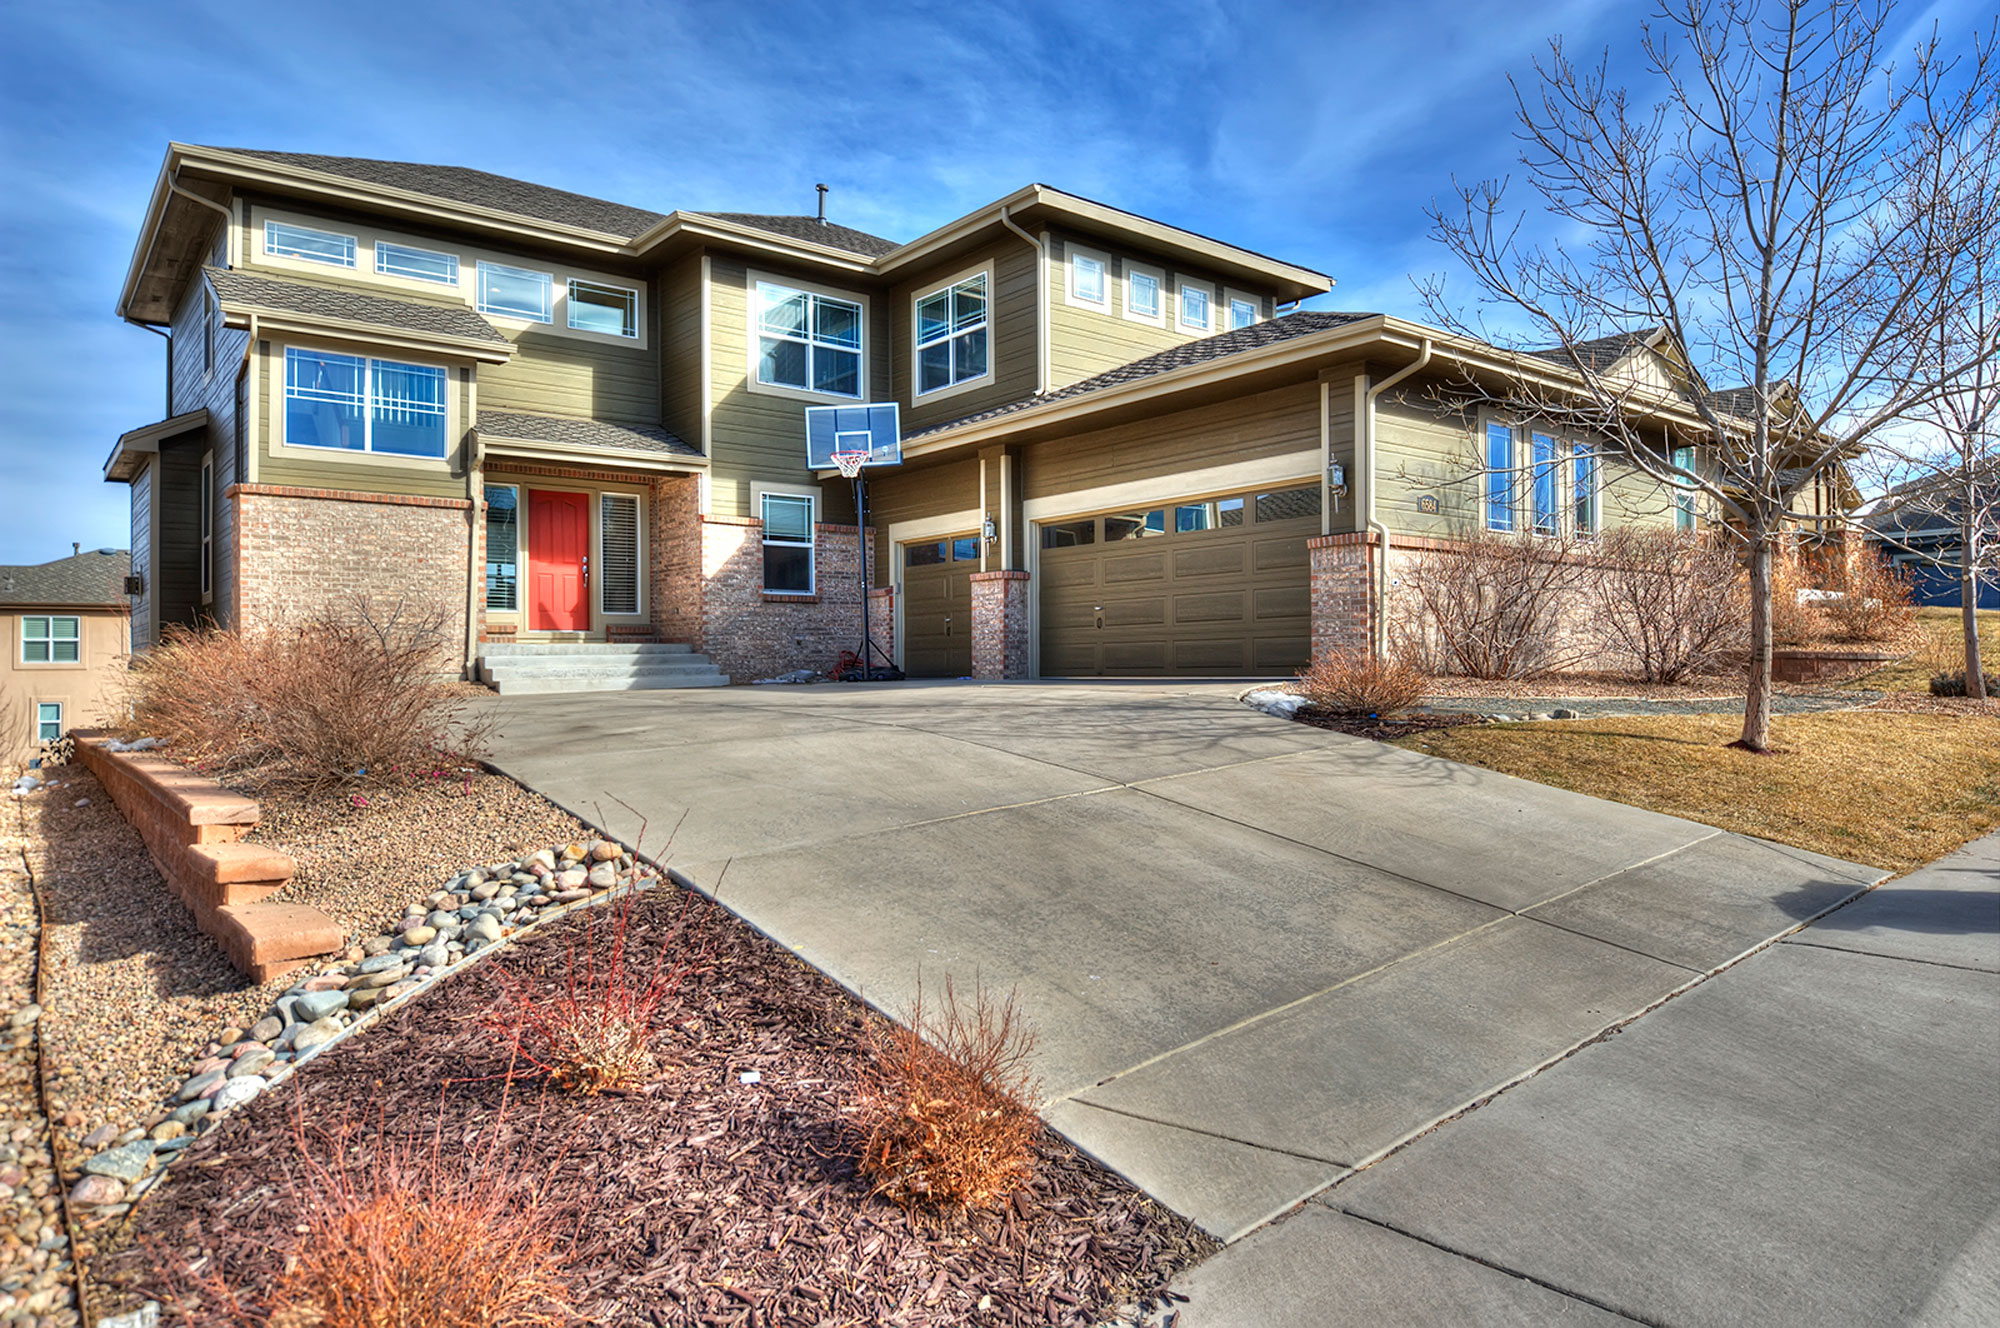 Beautiful home for sale at Vintage Reserve 4 bed 3 bath bathroom